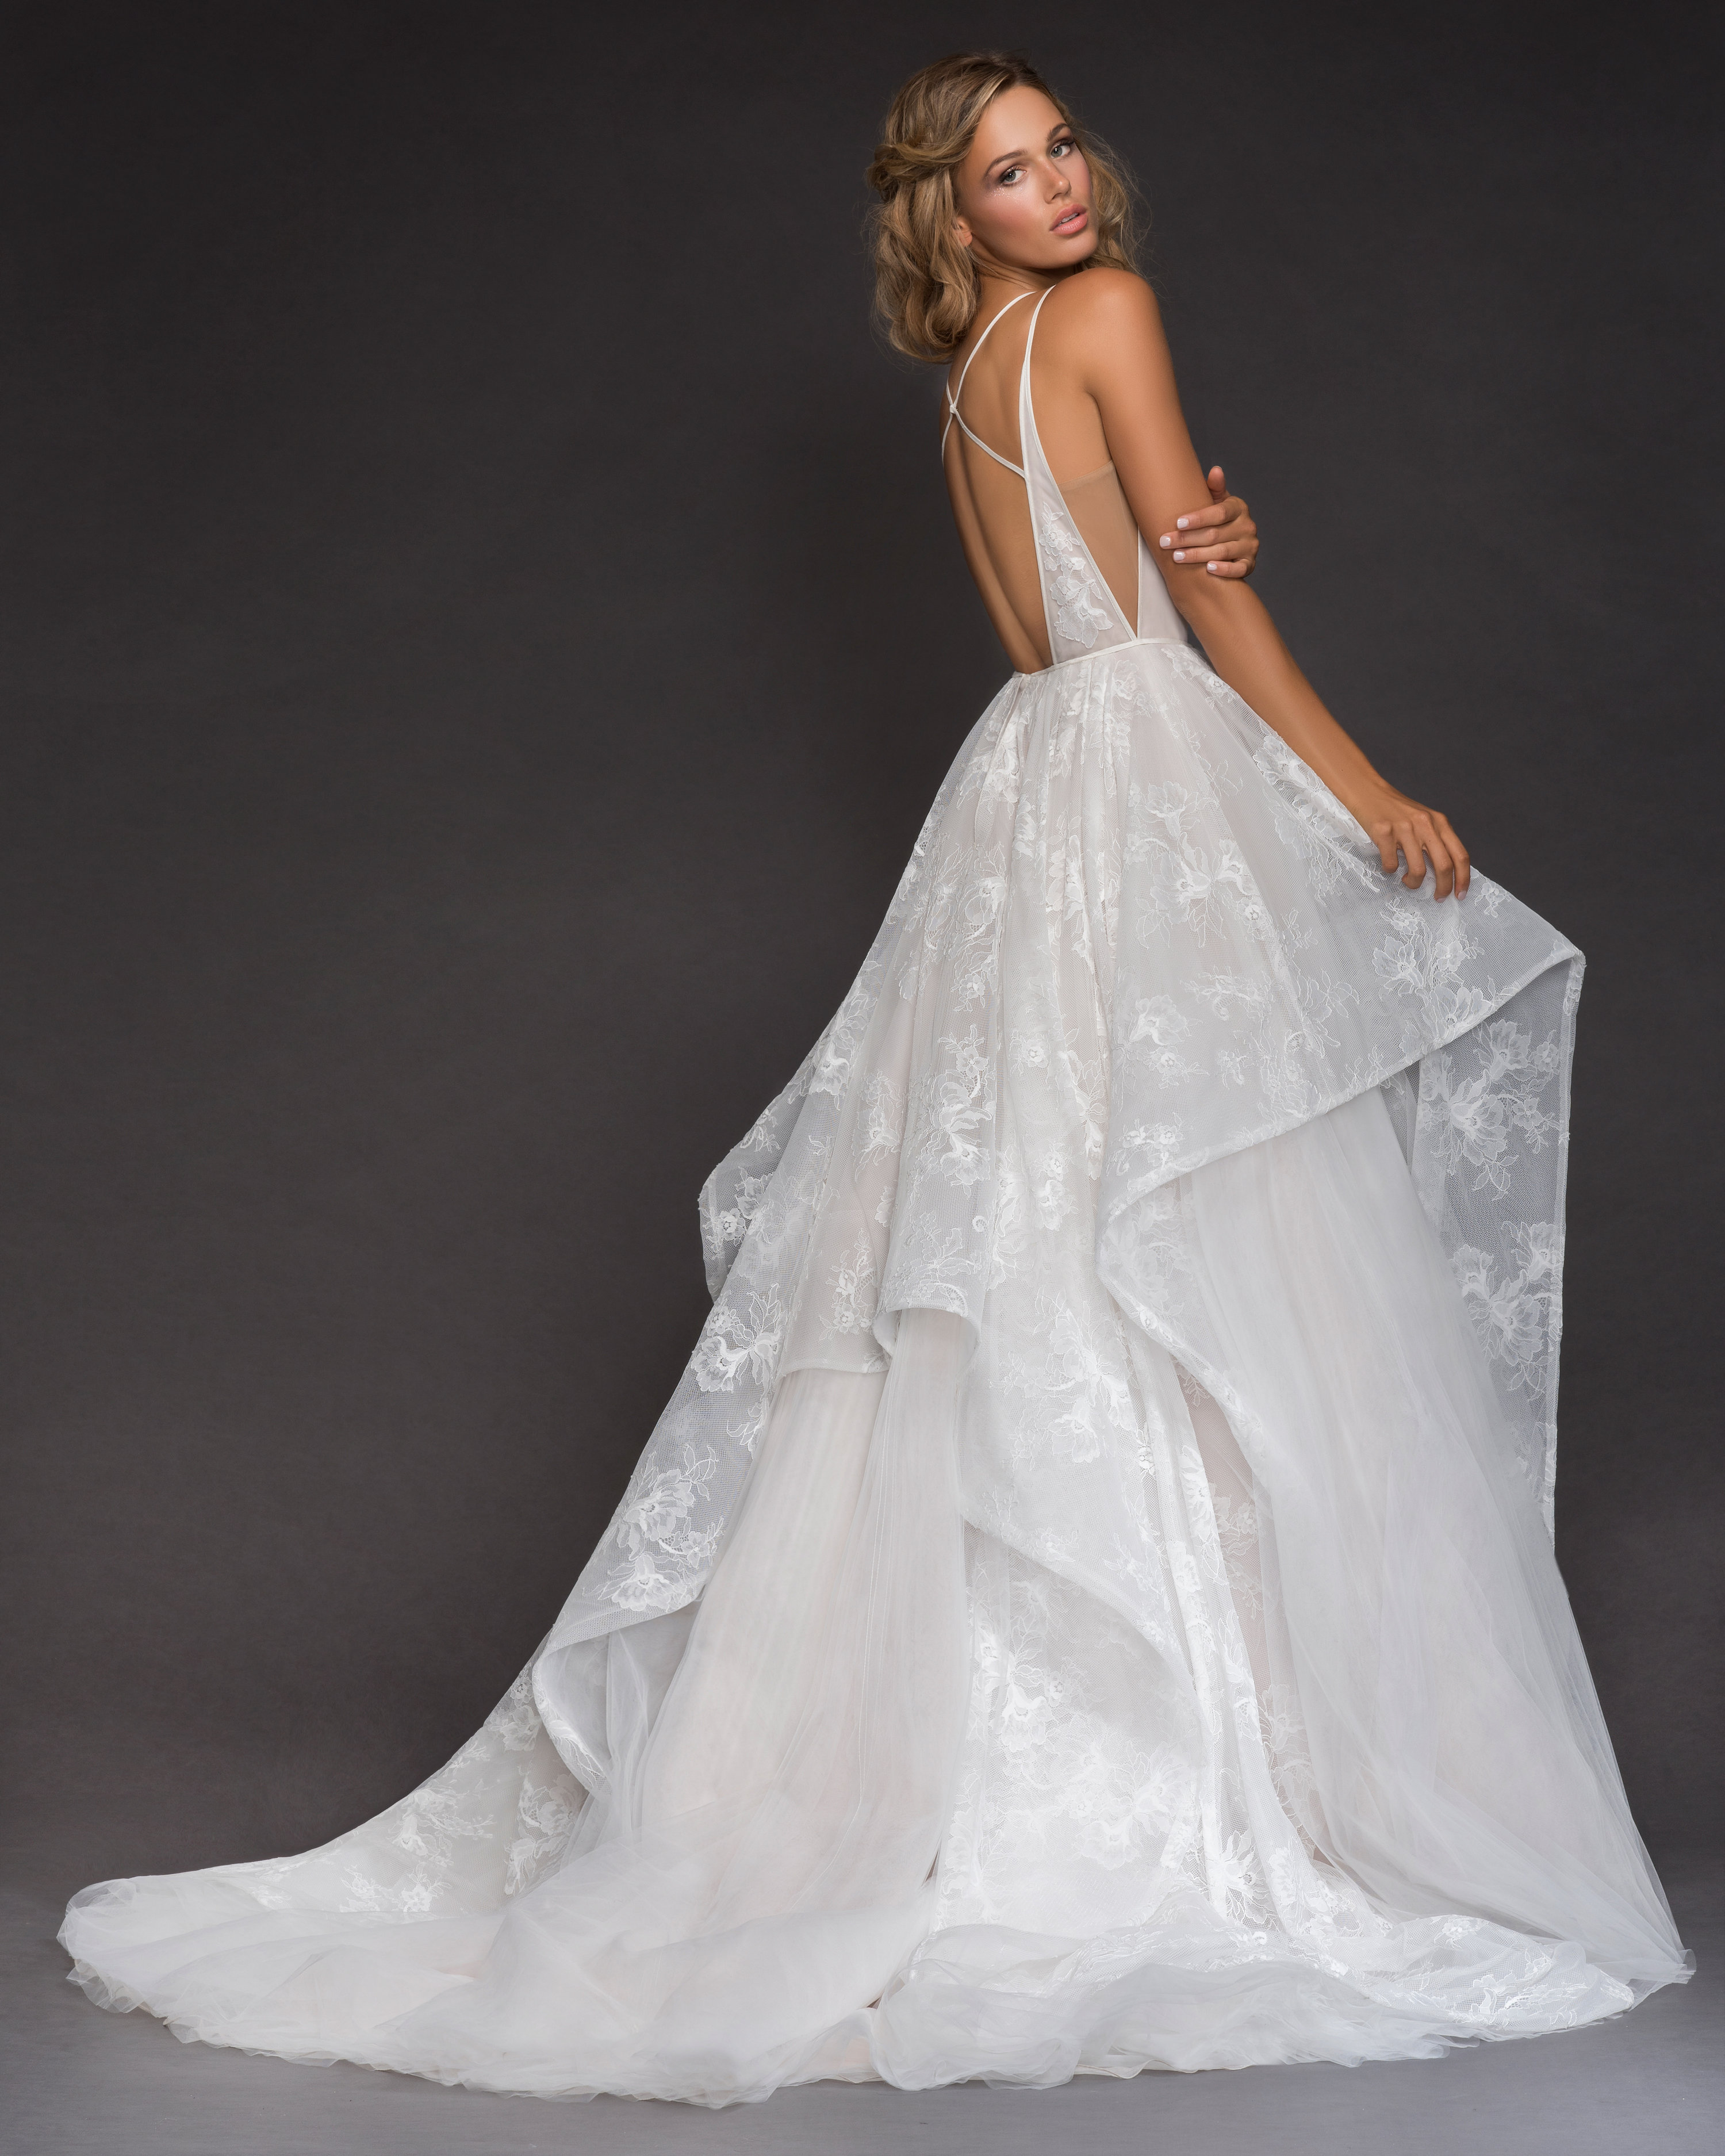 Bridal Gowns and Wedding Dresses by JLM Couture - Style 6811 Kellan